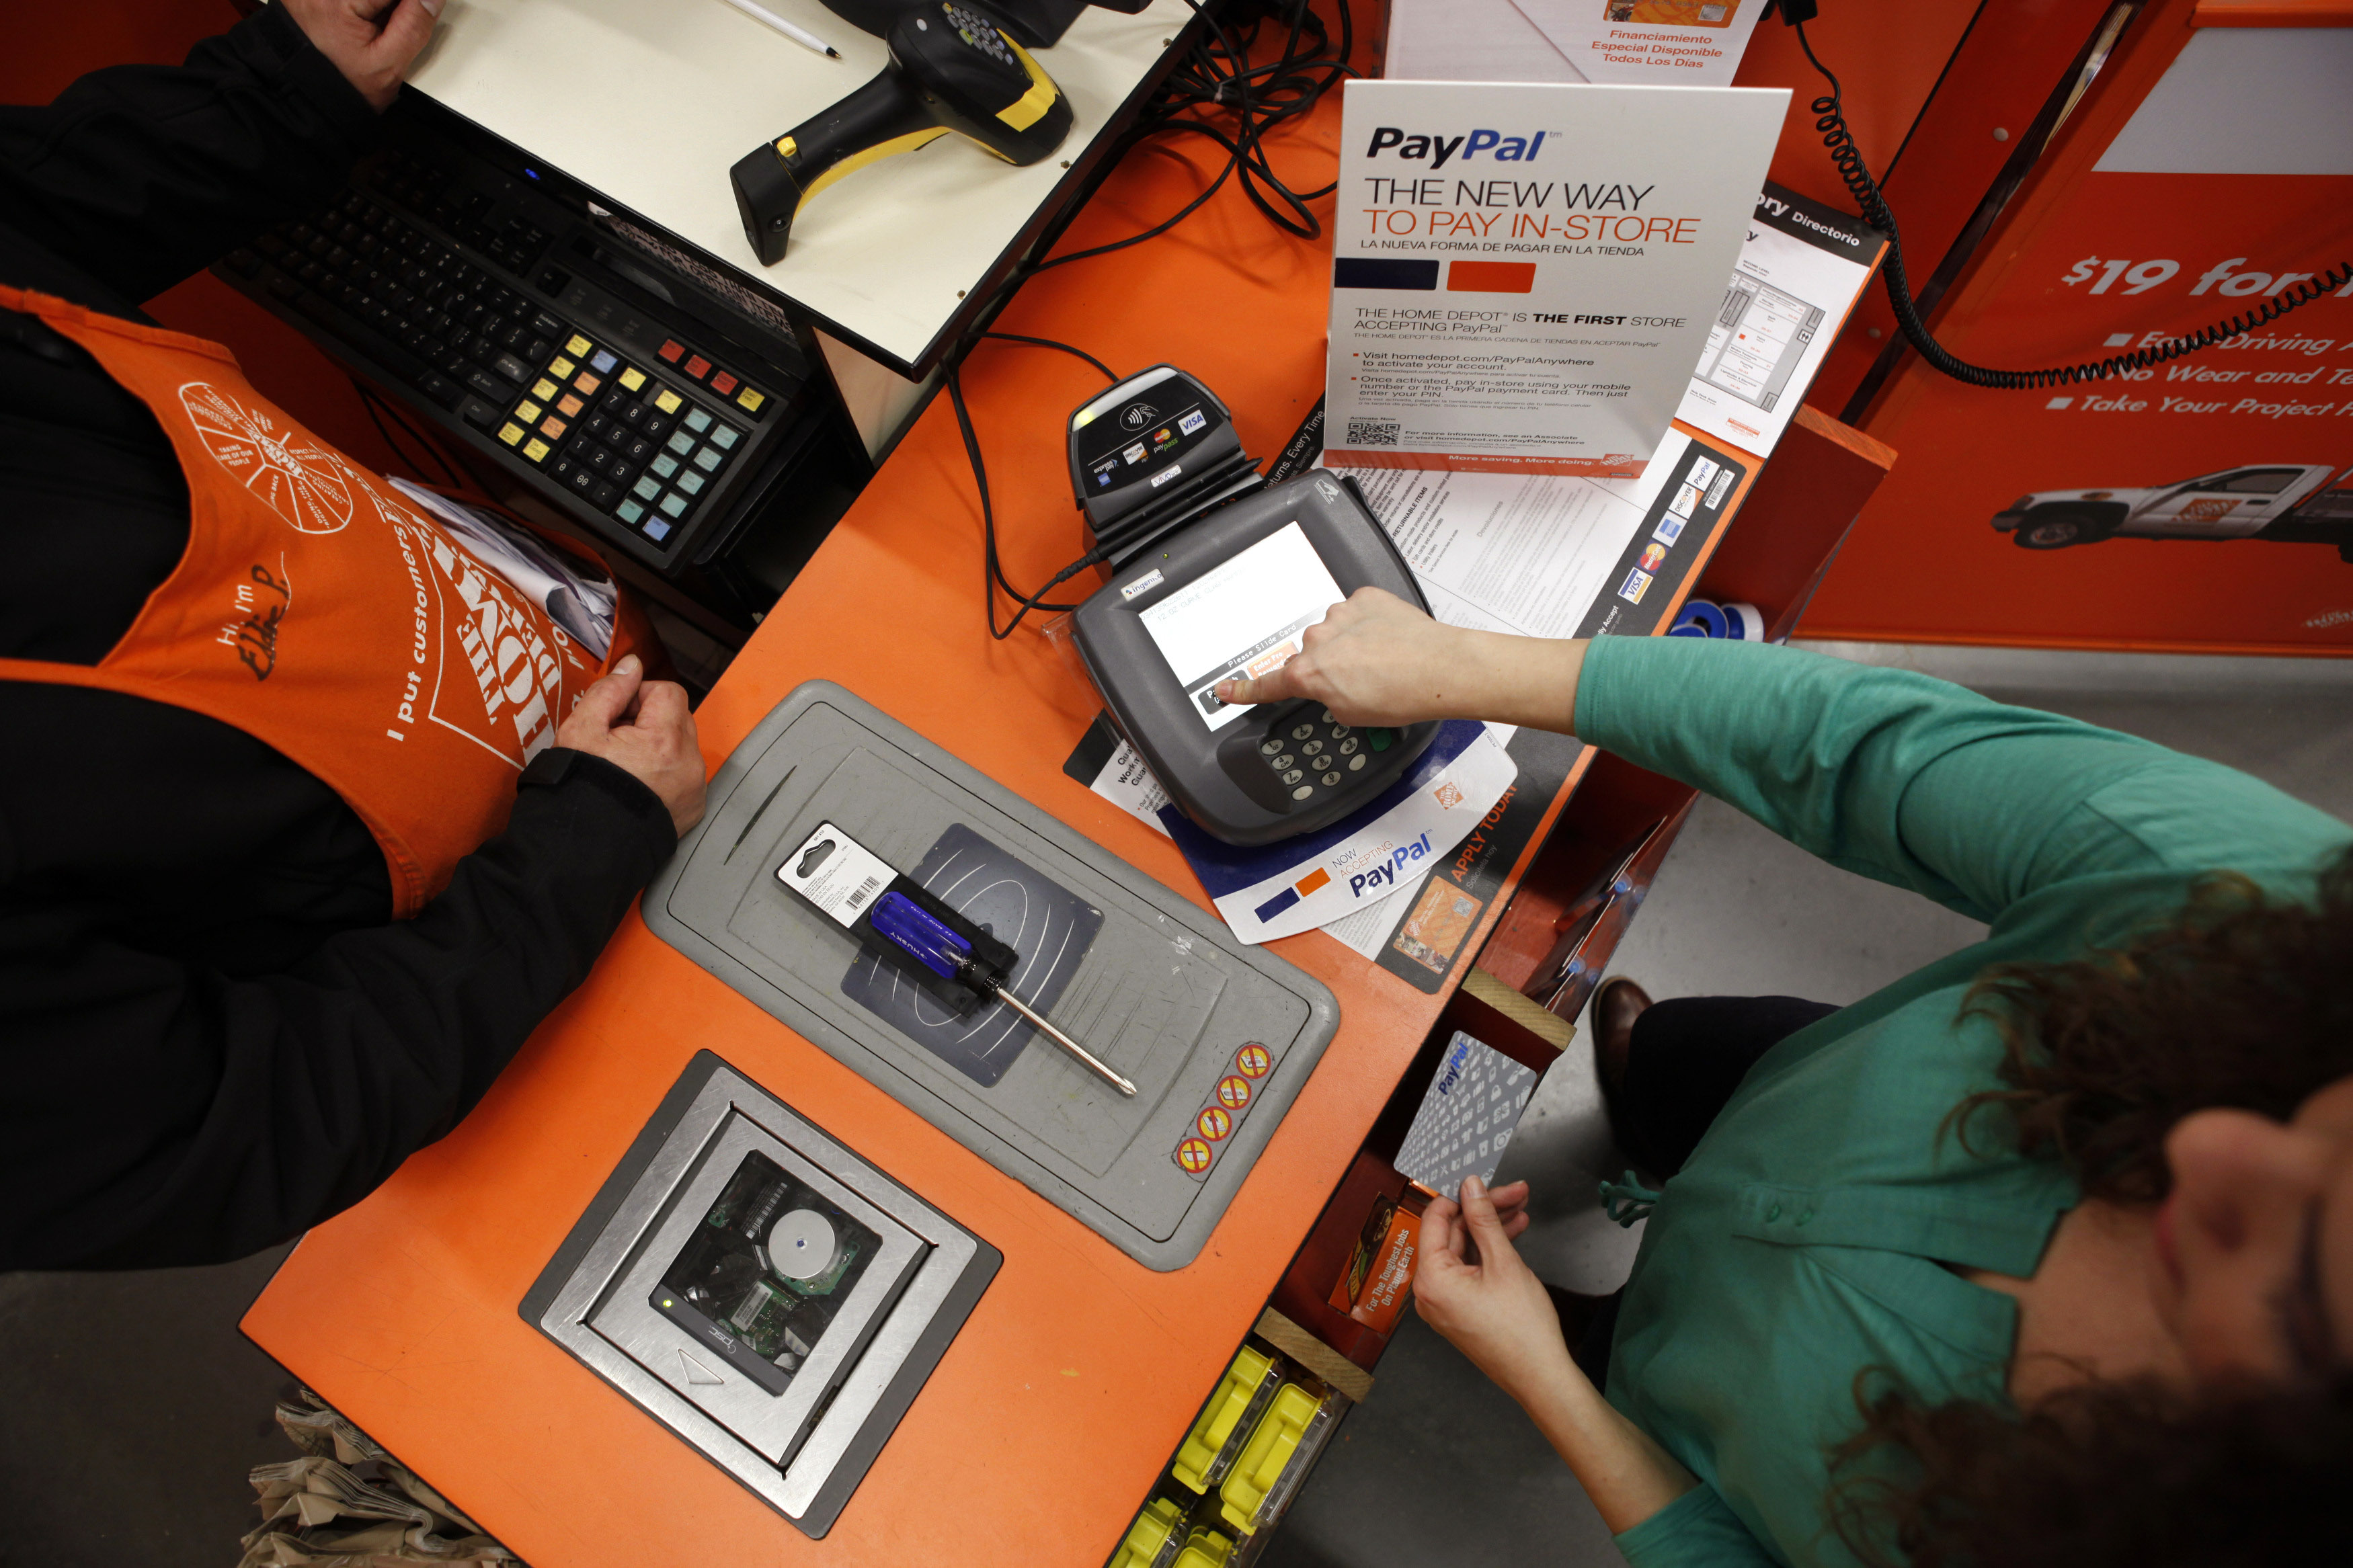 A Home Depot employee and a public relations representative demonstrate how the PayPal card works at a cashier station at a Home Depot store in Daly City